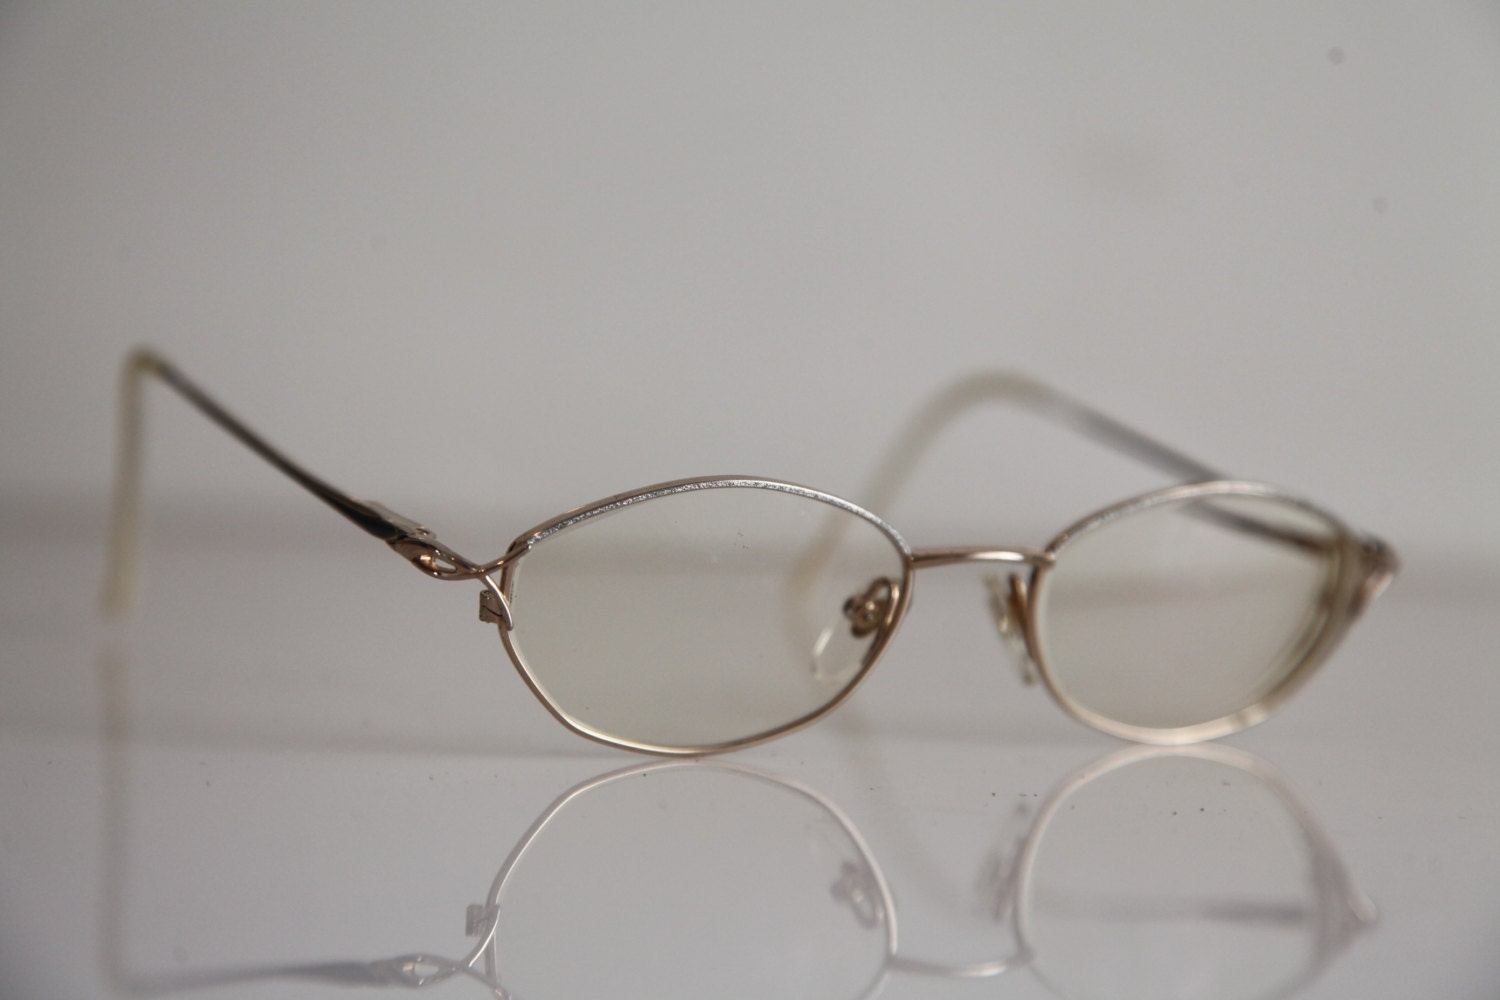 Gold And Silver Eyeglass Frames : Vintage AMA Eyewear, Gold and Silver Frame, RX-Able ...